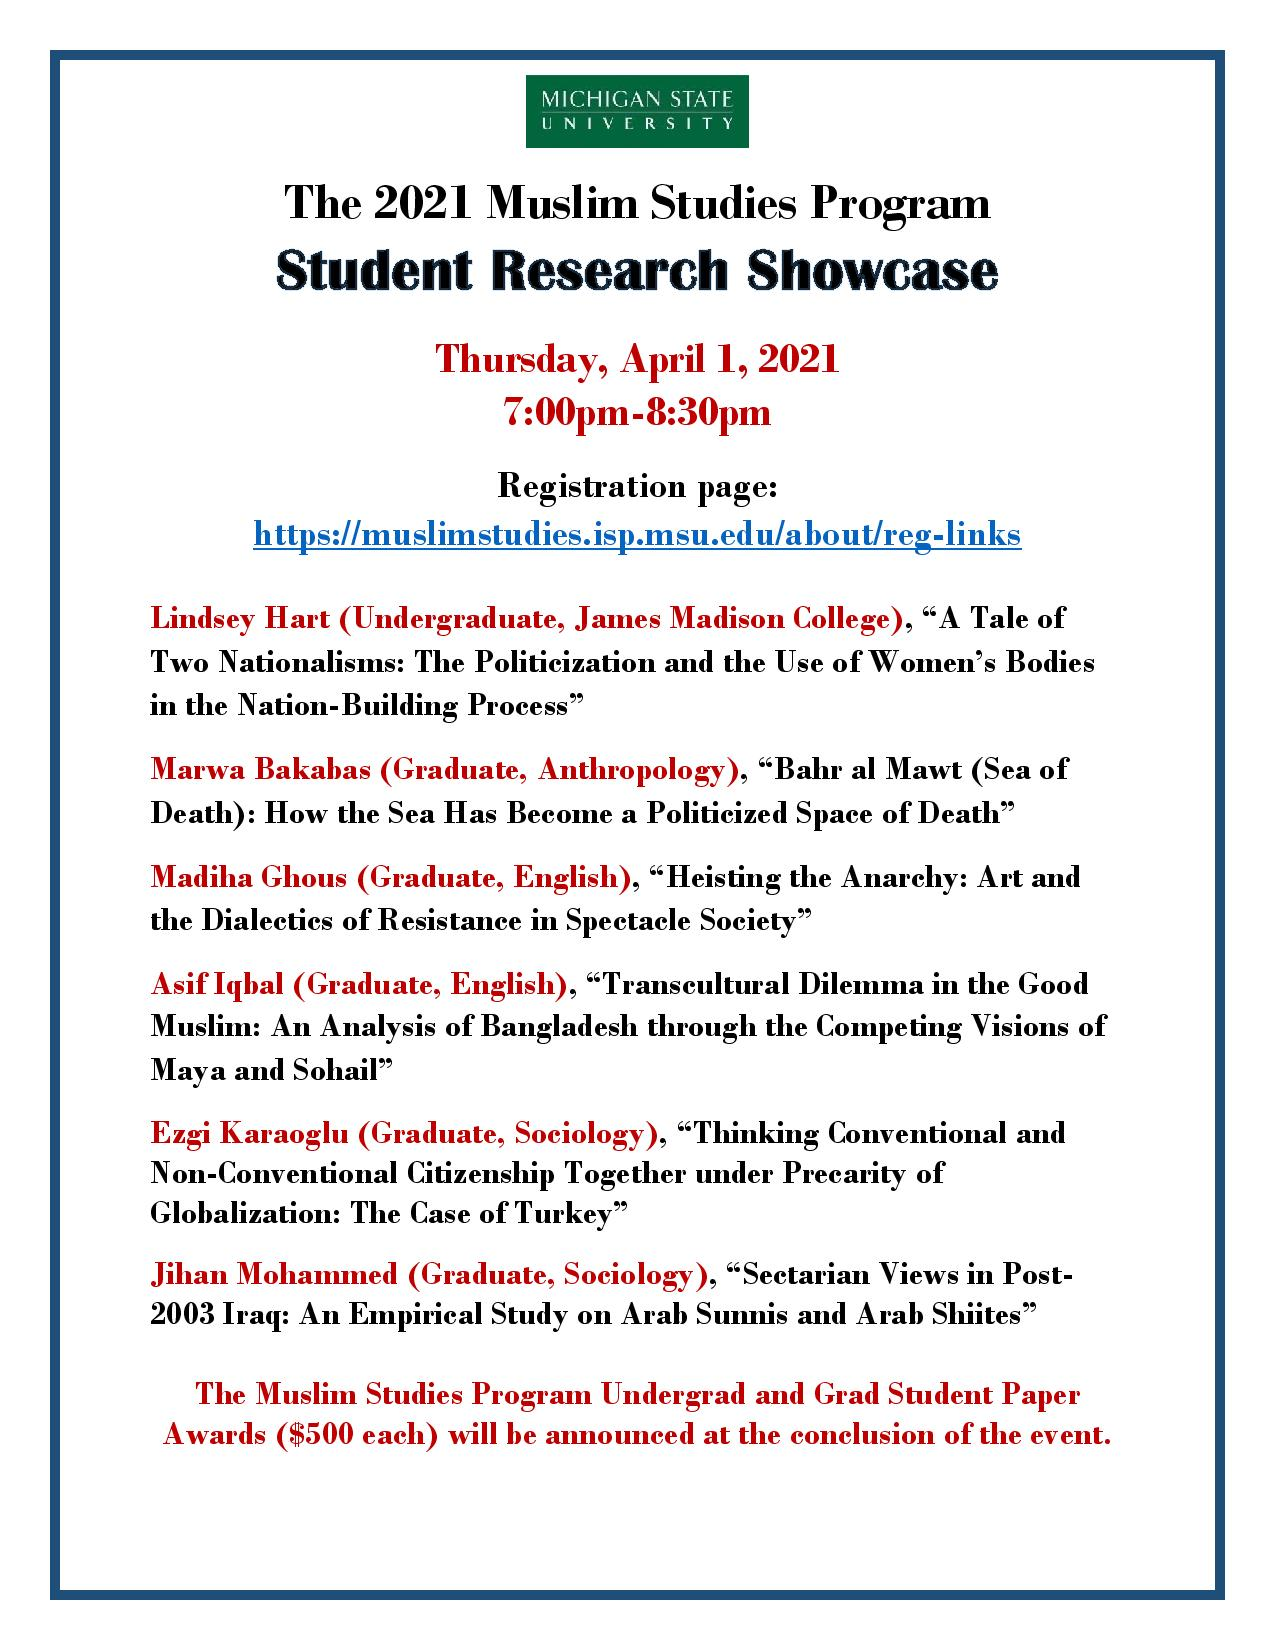 Flyer for the 2021 Muslim Studies Program Student Research Showcase, Thursday, April 1, 2021 7:00-8:30pm, presentations by Lindsey Hart, Marwa Bakabas, Madiha Ghous, Asif Iqbal, Ezgi Karaoglu, Jihan Mohammed, Undergrad and Grad Student Paper Awards ($500 each) will be announced at the conclusion of the event